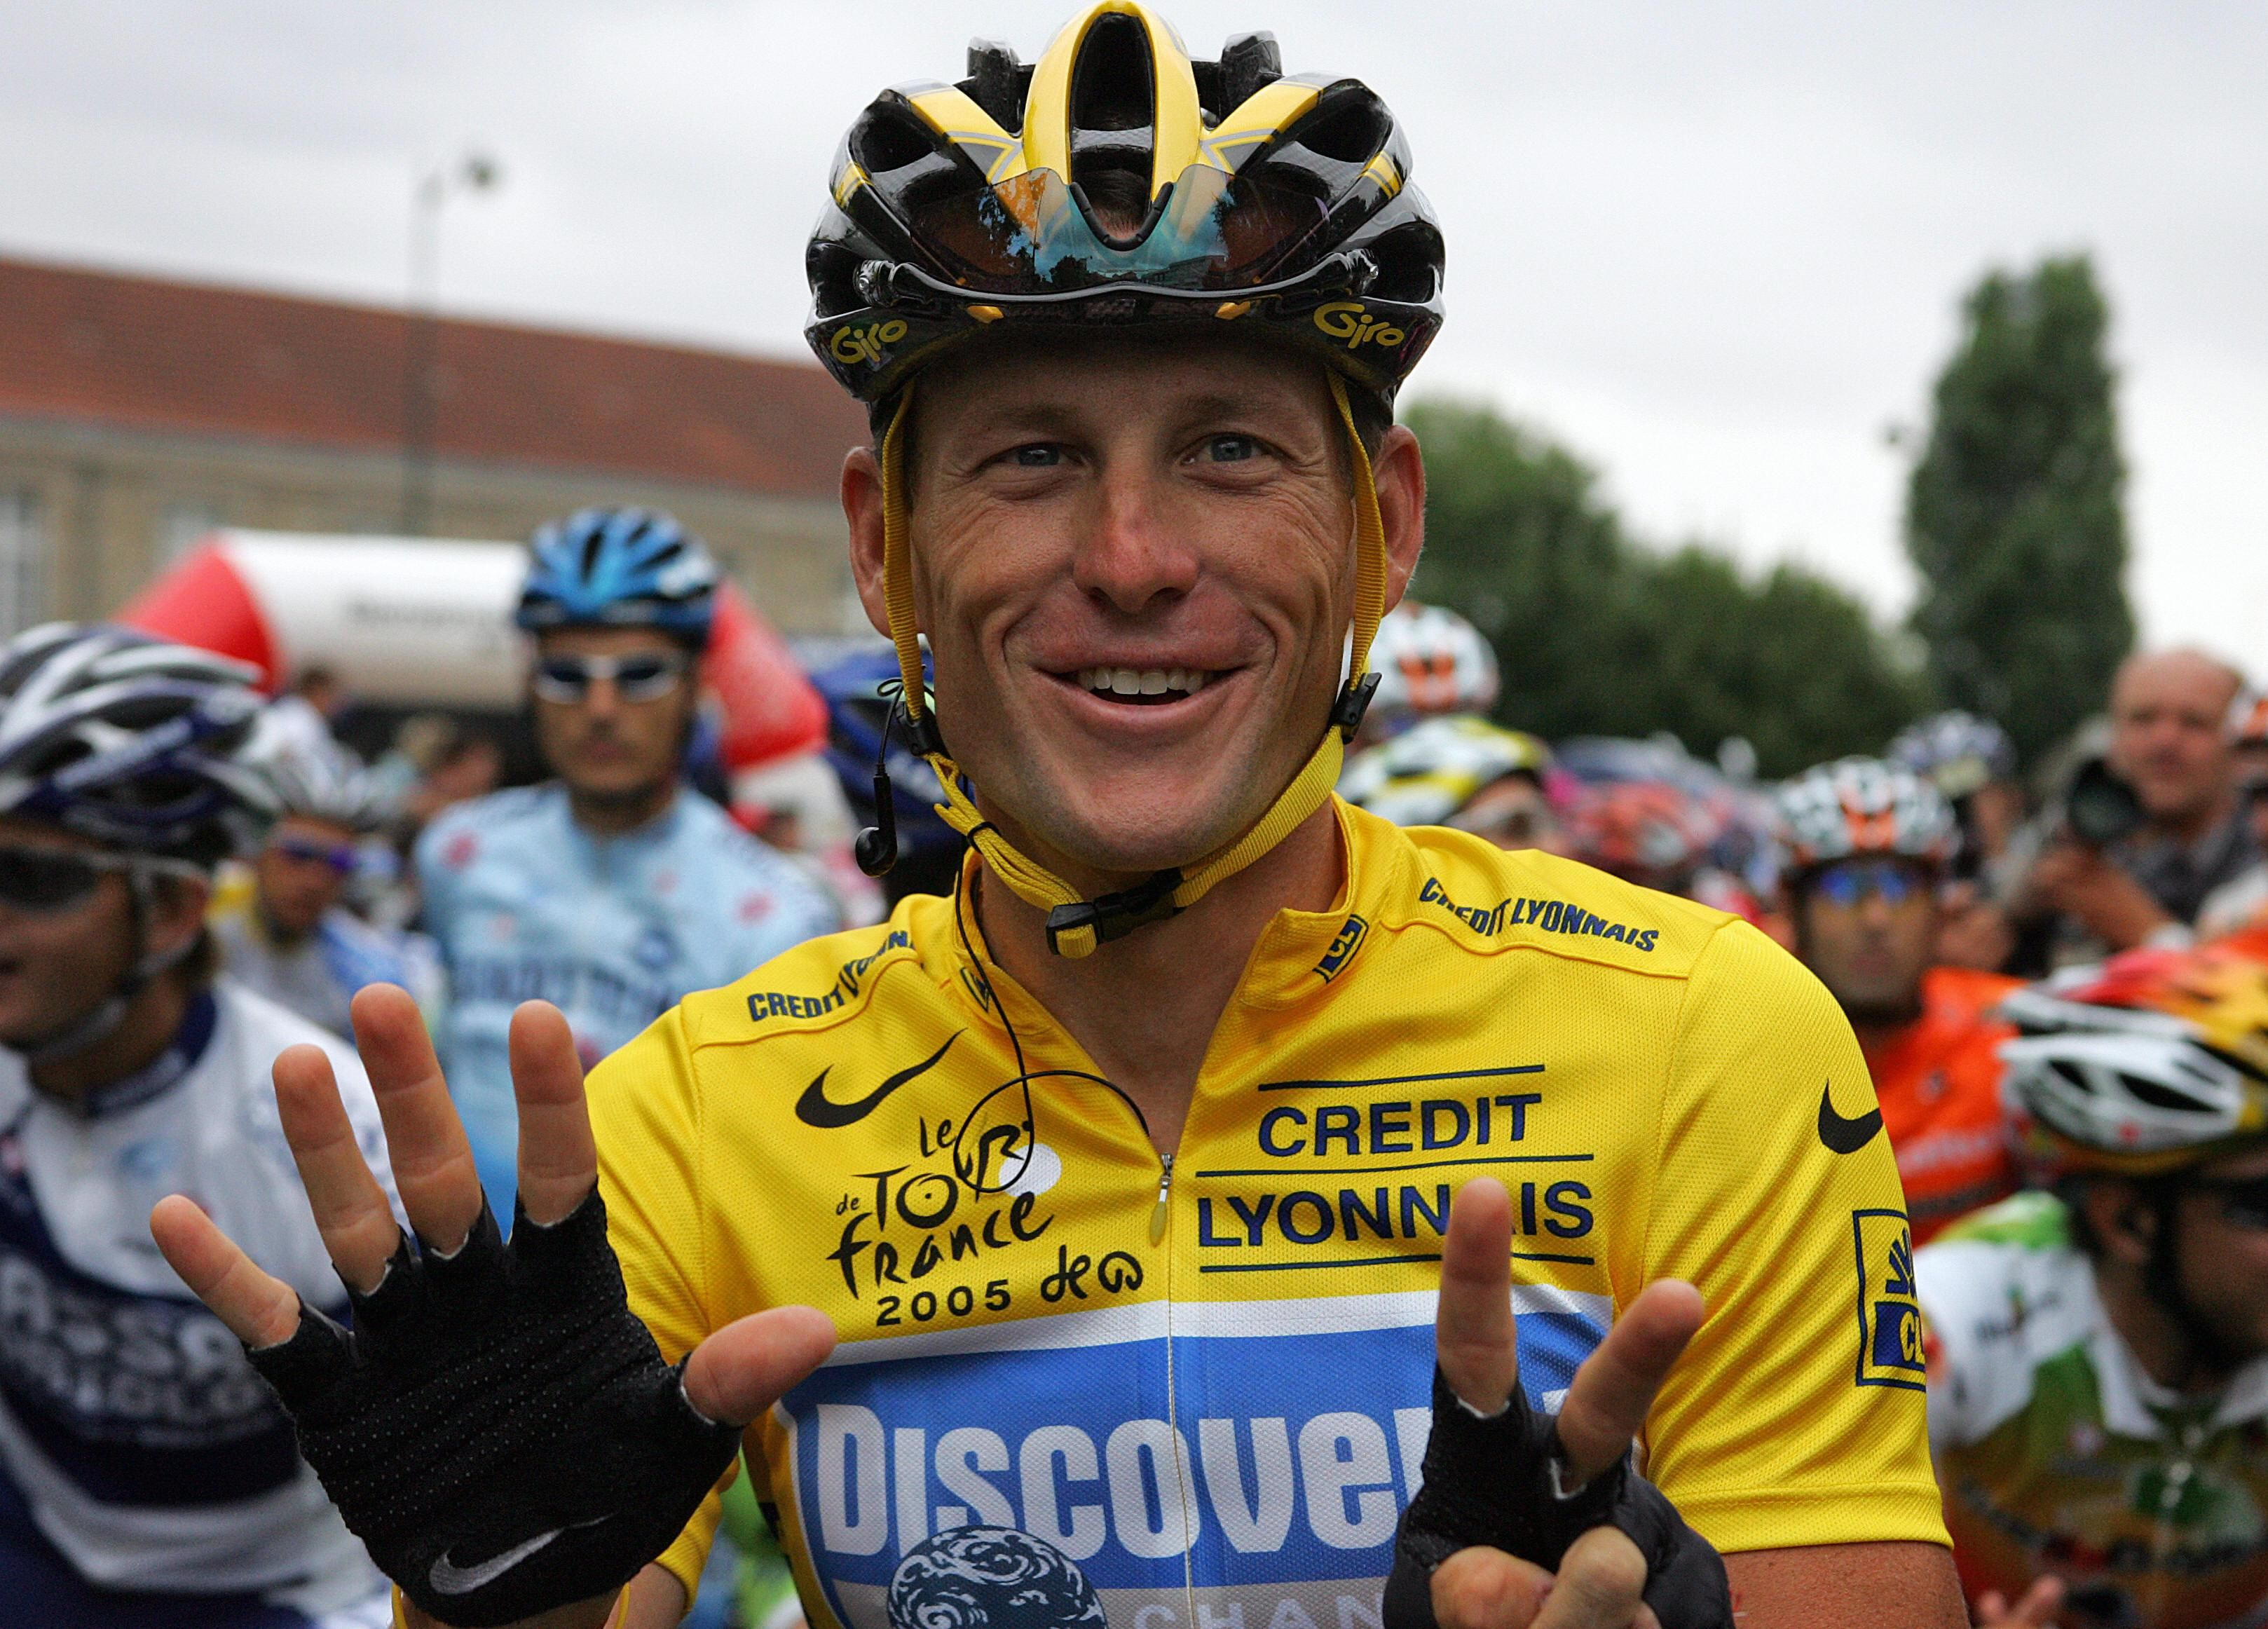 Lance Armstrong Icarus In 2019 Sports Tour De France Athlete